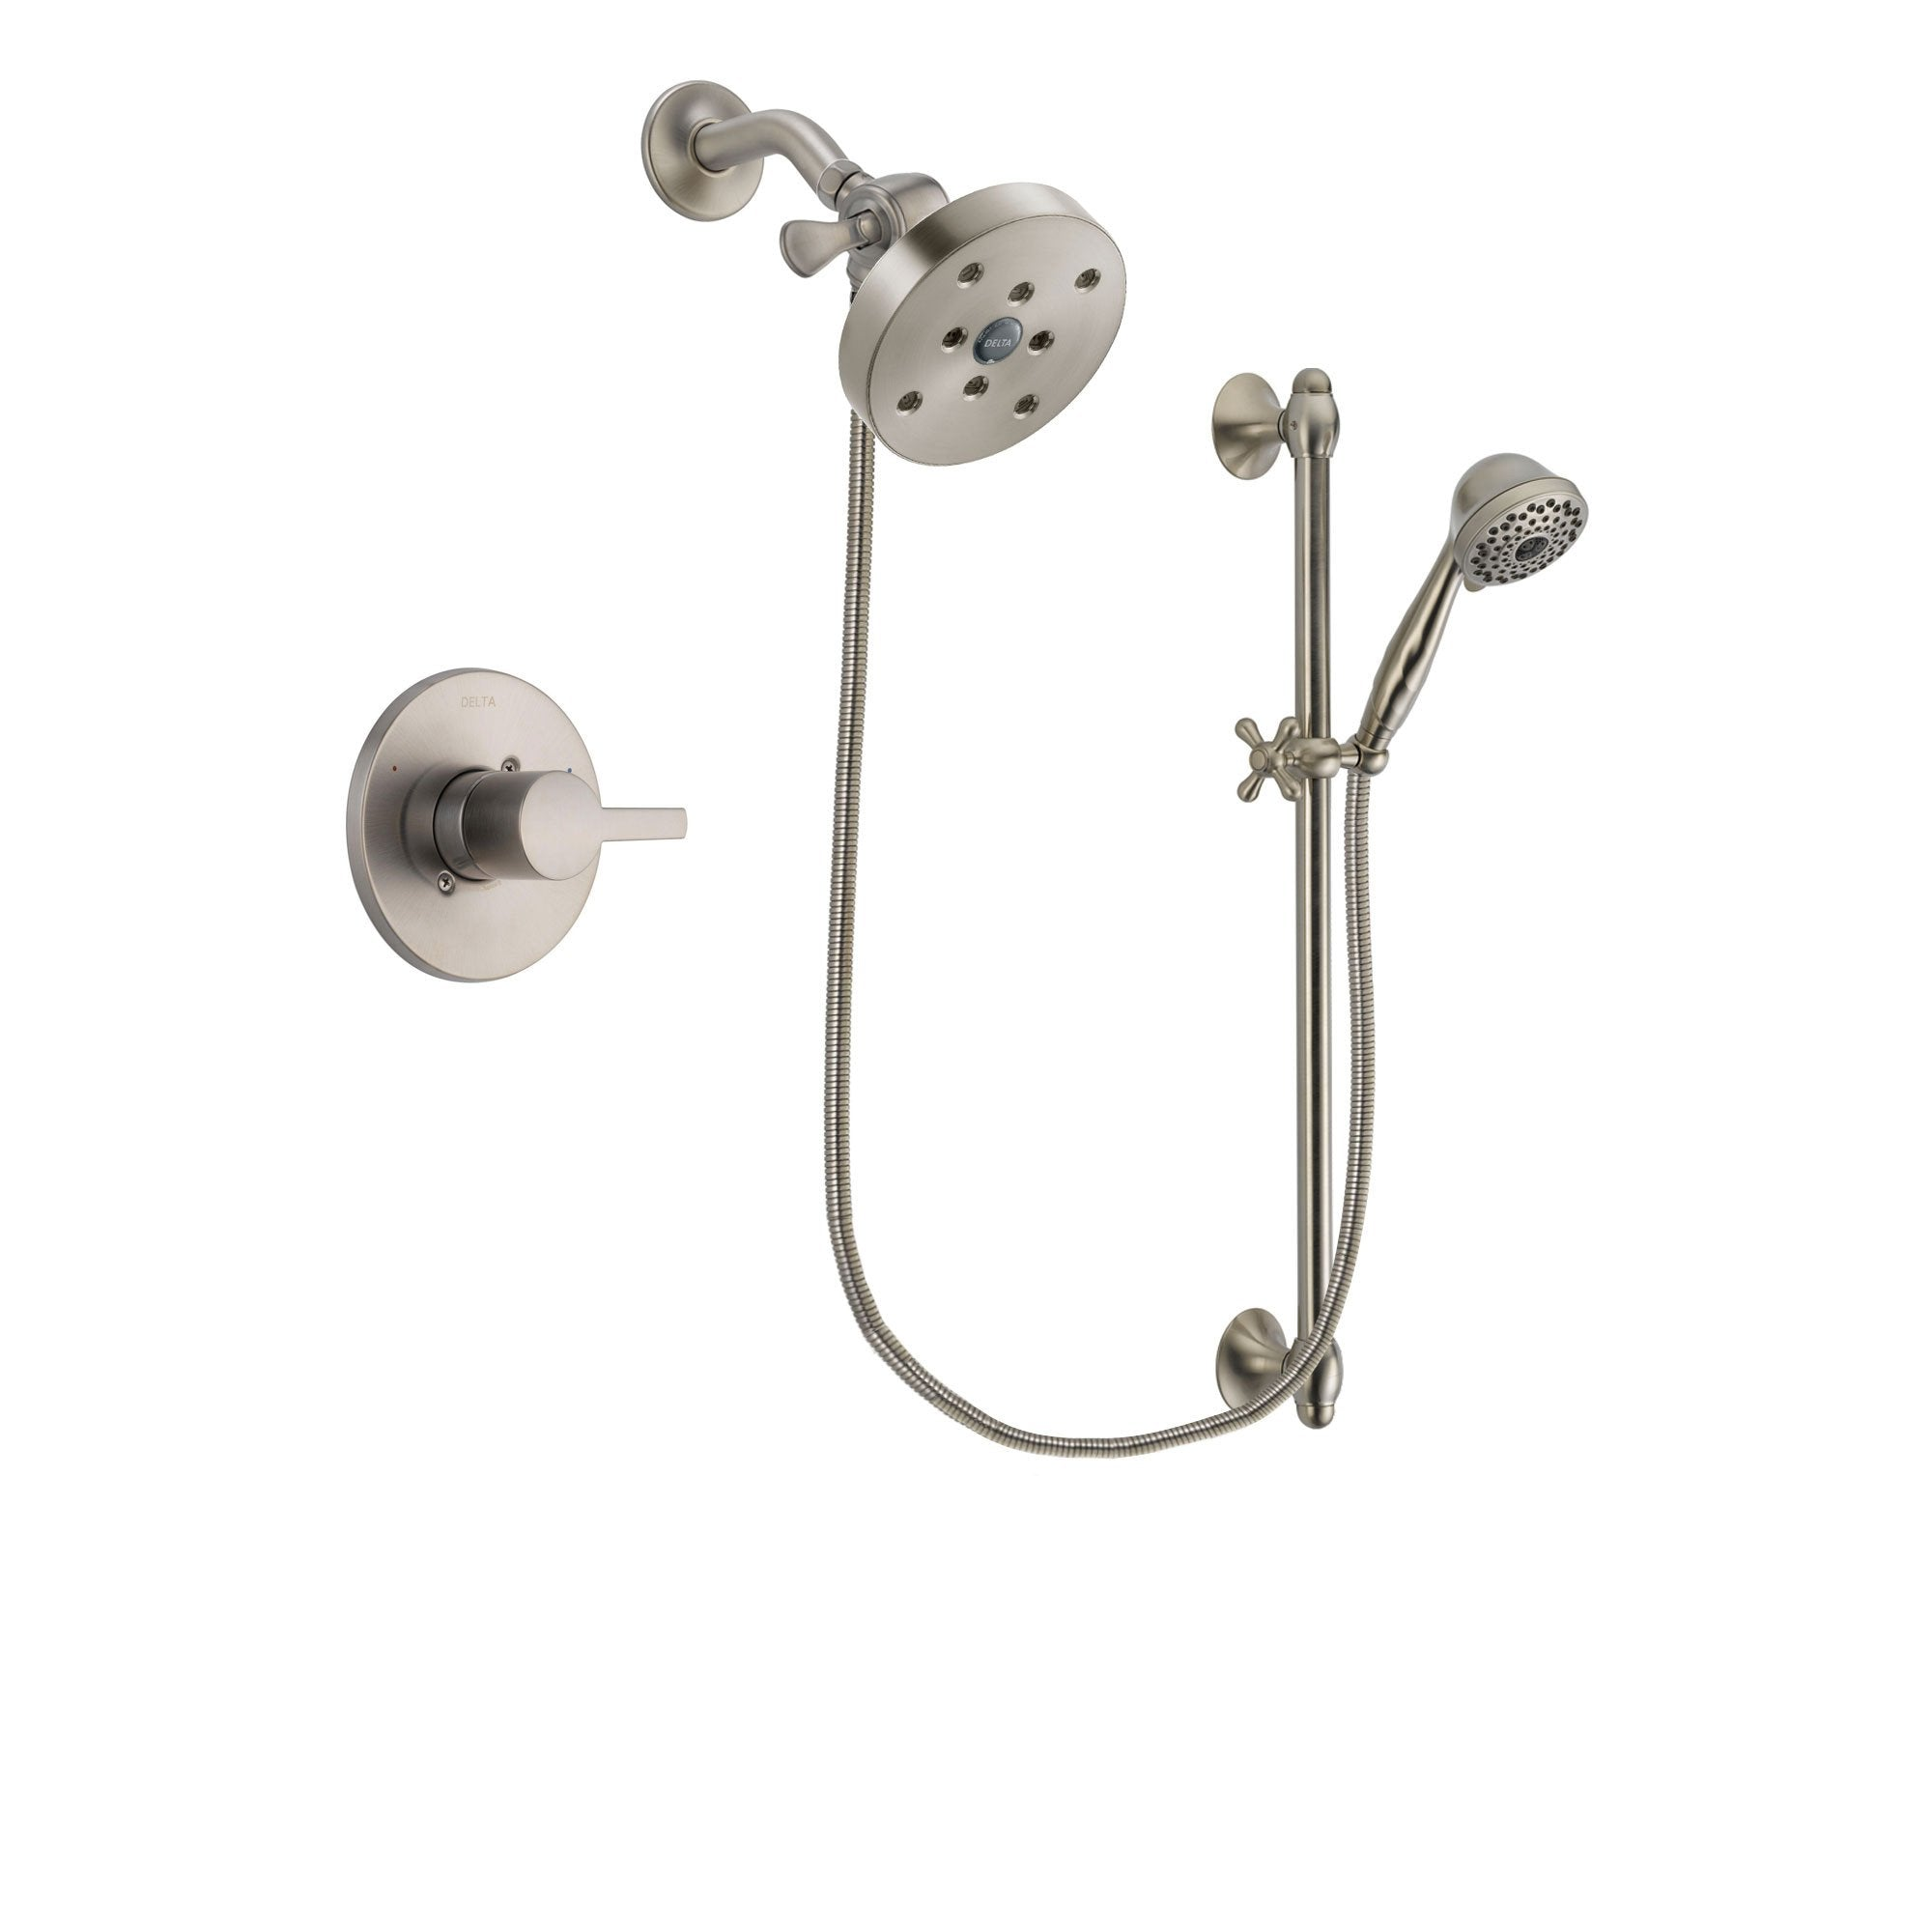 Delta Compel Stainless Steel Finish Shower Faucet System w/ Hand Spray DSP1766V